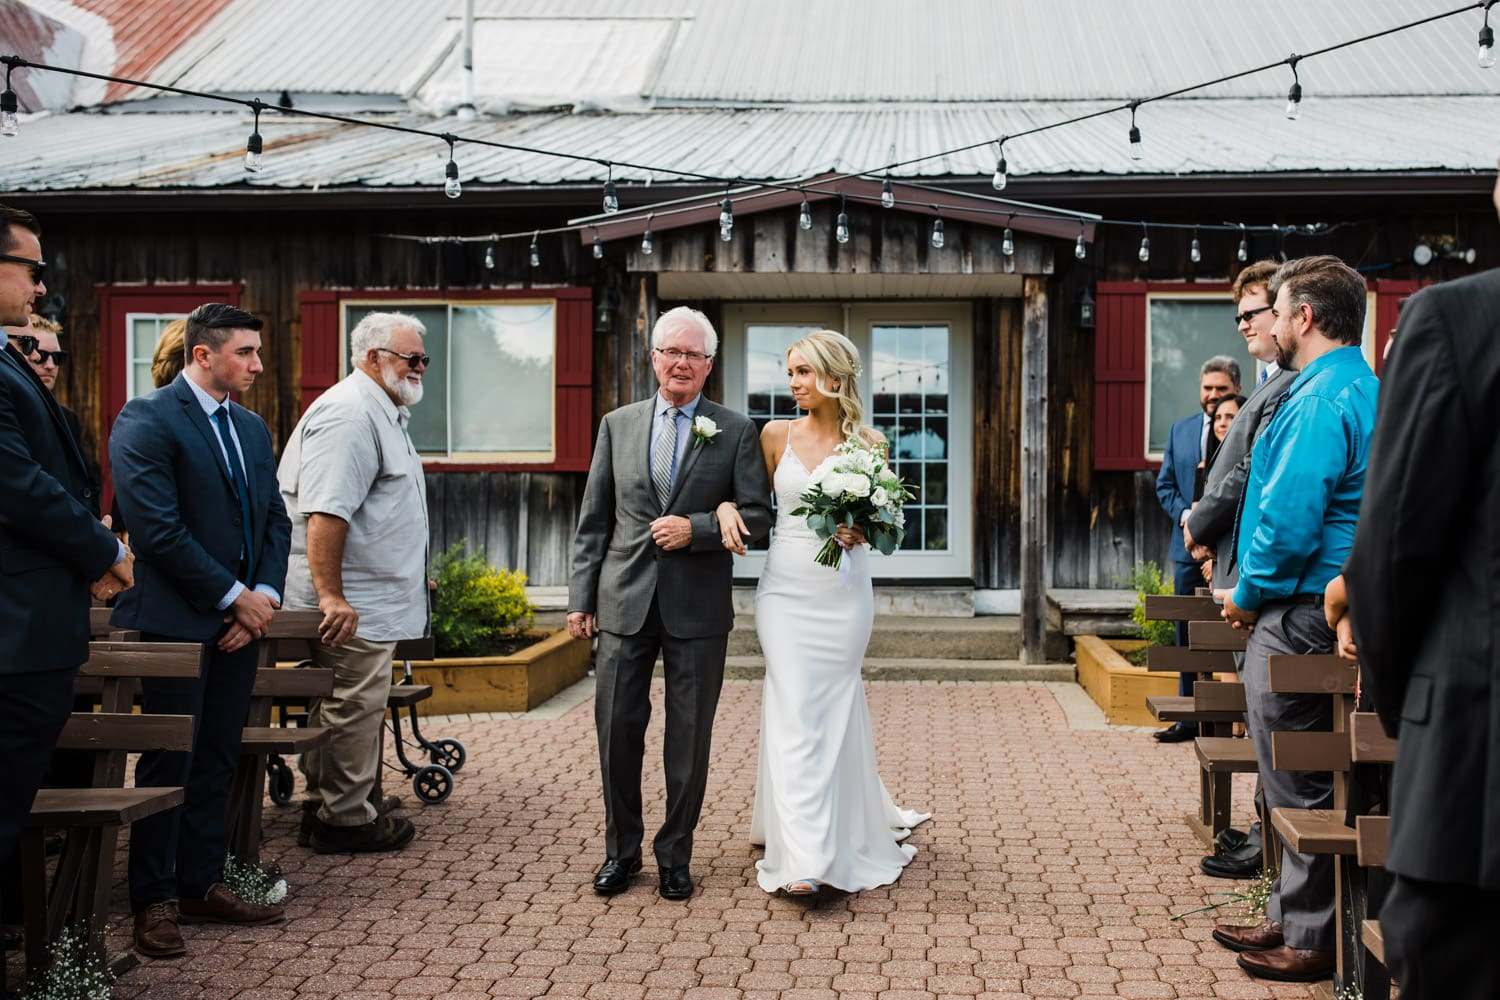 bride looks at her father as they walk down aisle together - summer strathmere wedding - carley teresa photography